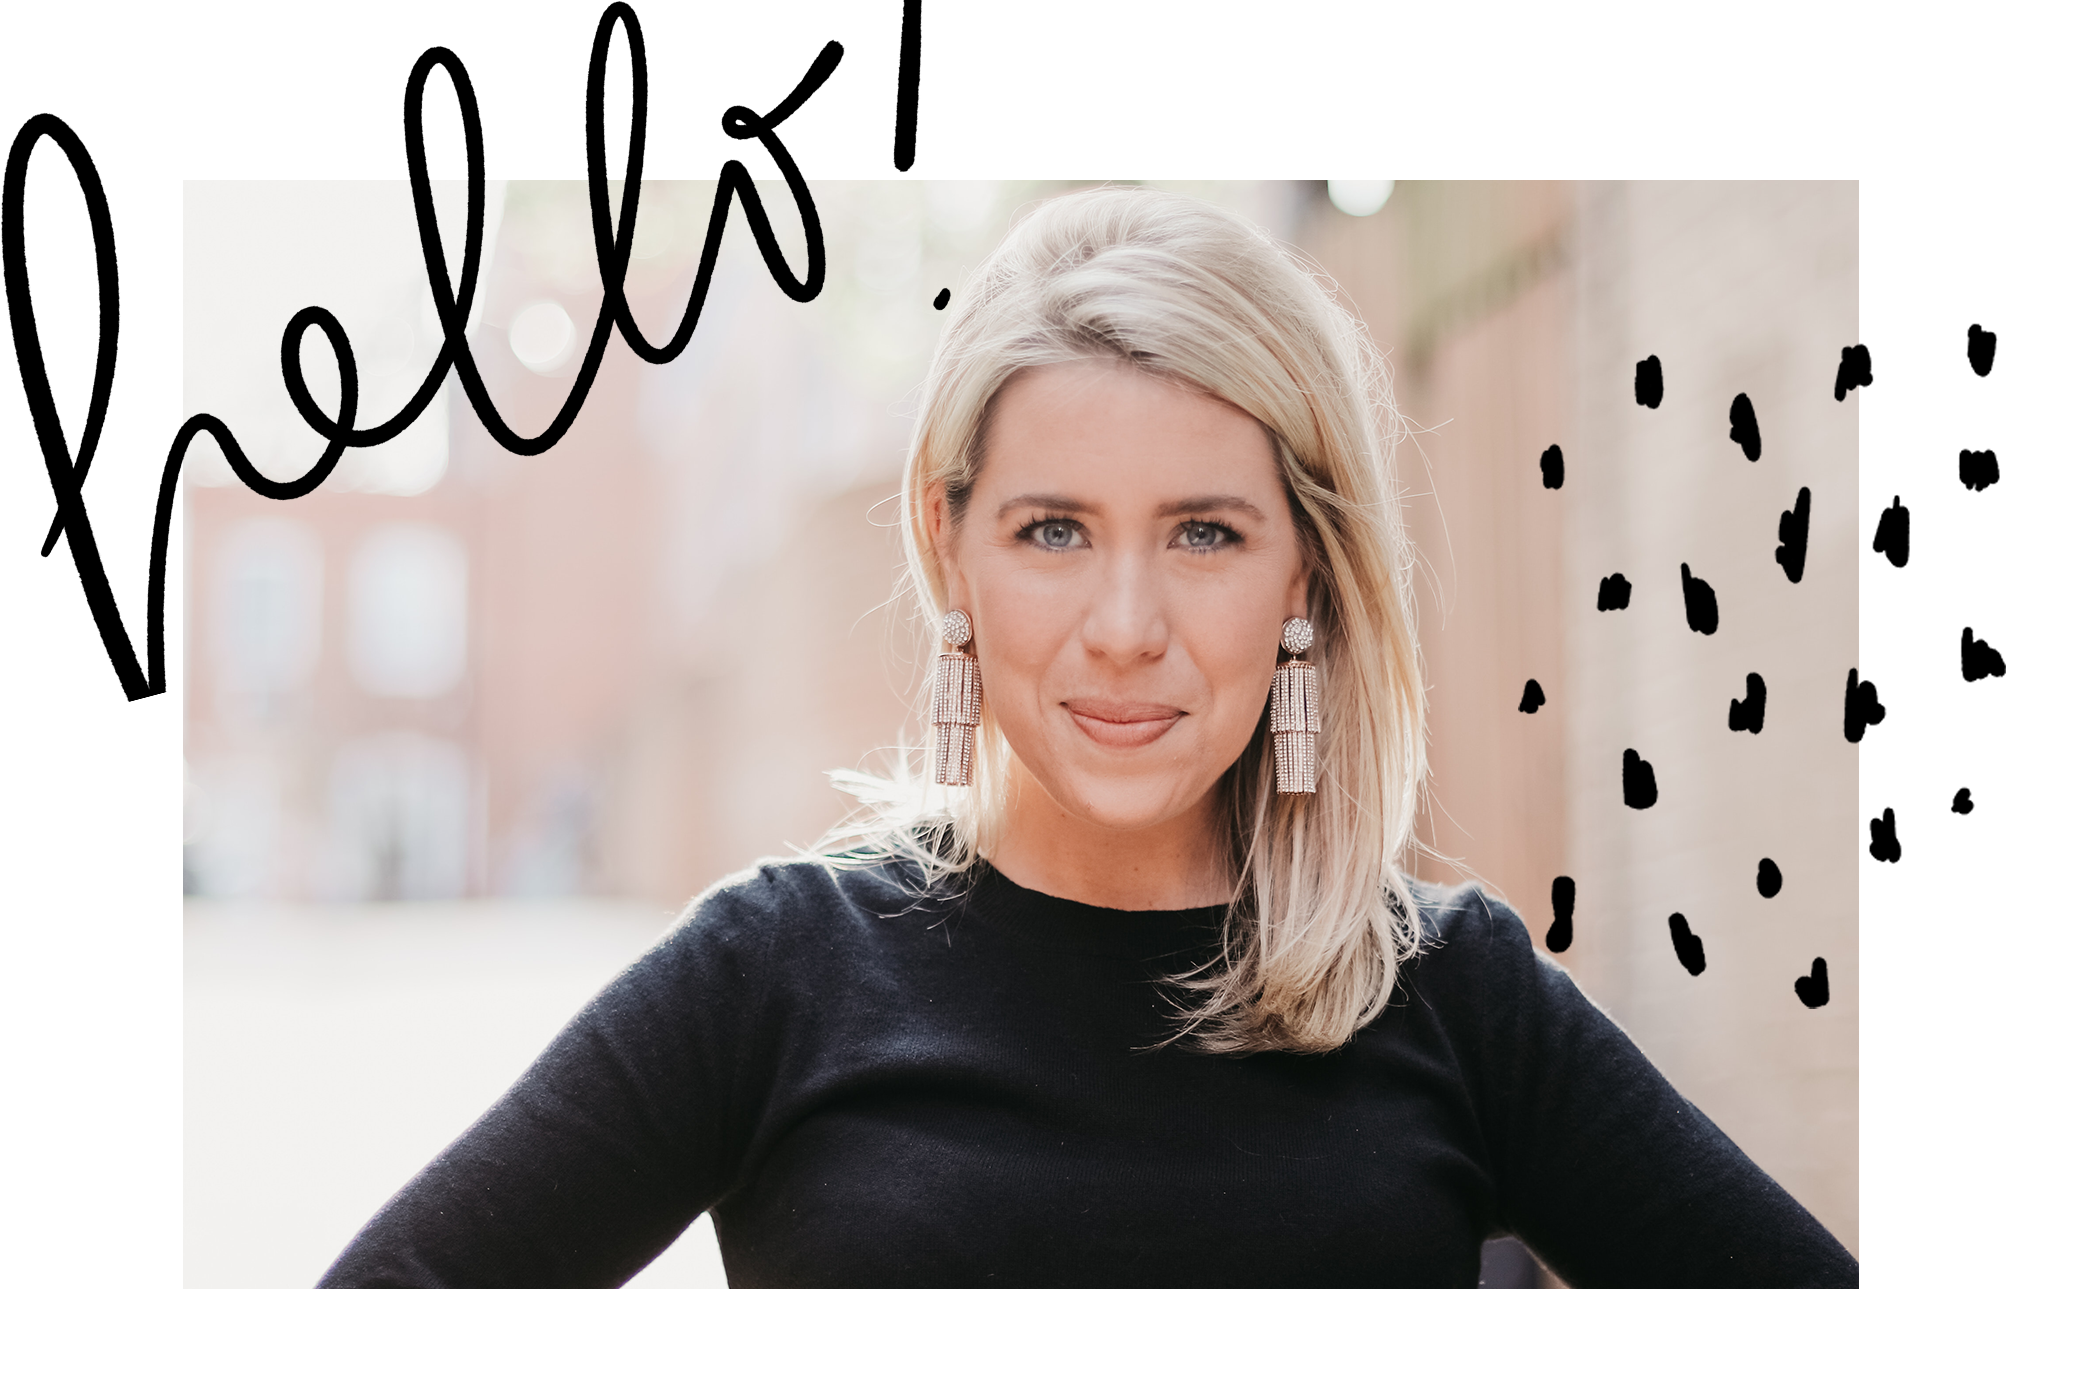 """meet beezy - Hi! My name is Sarah Butler, but I go by Beezy! I am a creative communicator and digital marketer based in Washington, DC. I created this website to house my portfolio. Hover your mouse over the black """"Featured Projects"""" button above to see some of my fav projects!"""